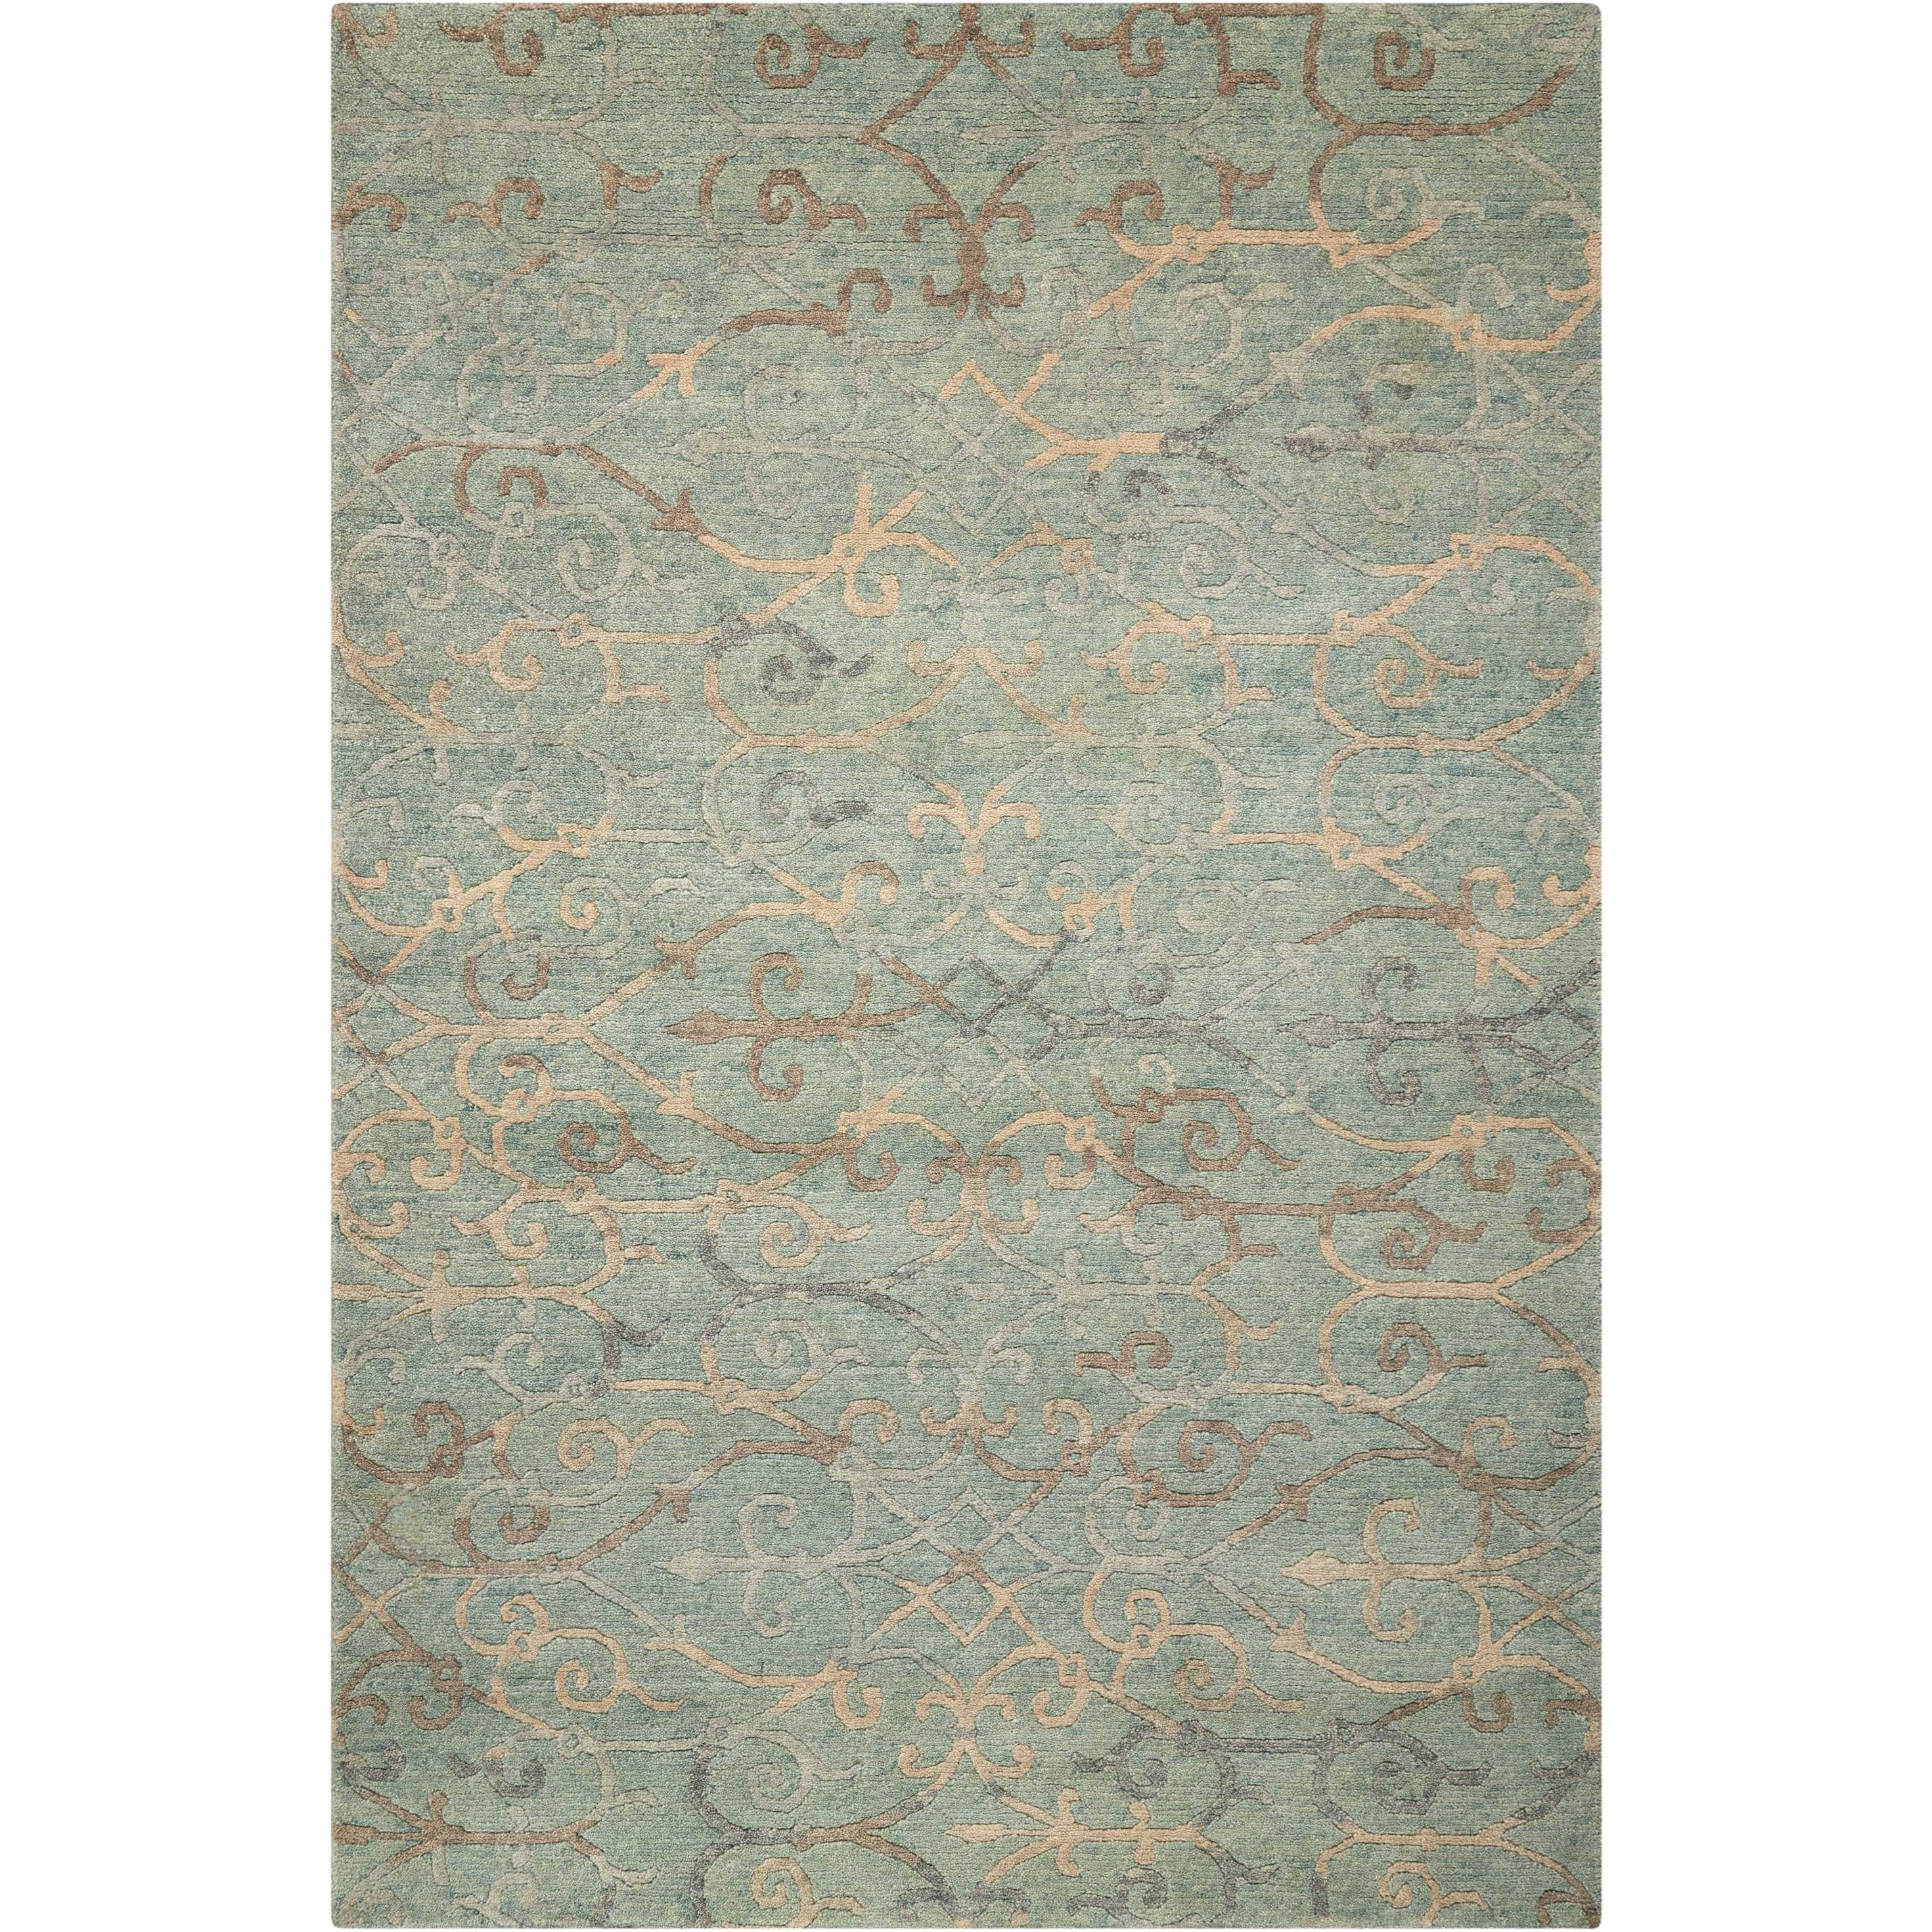 "Tahoe Modern 5'6"" x 8'6"" Seaglass Rectangle Rug by Nourison at Home Collections Furniture"